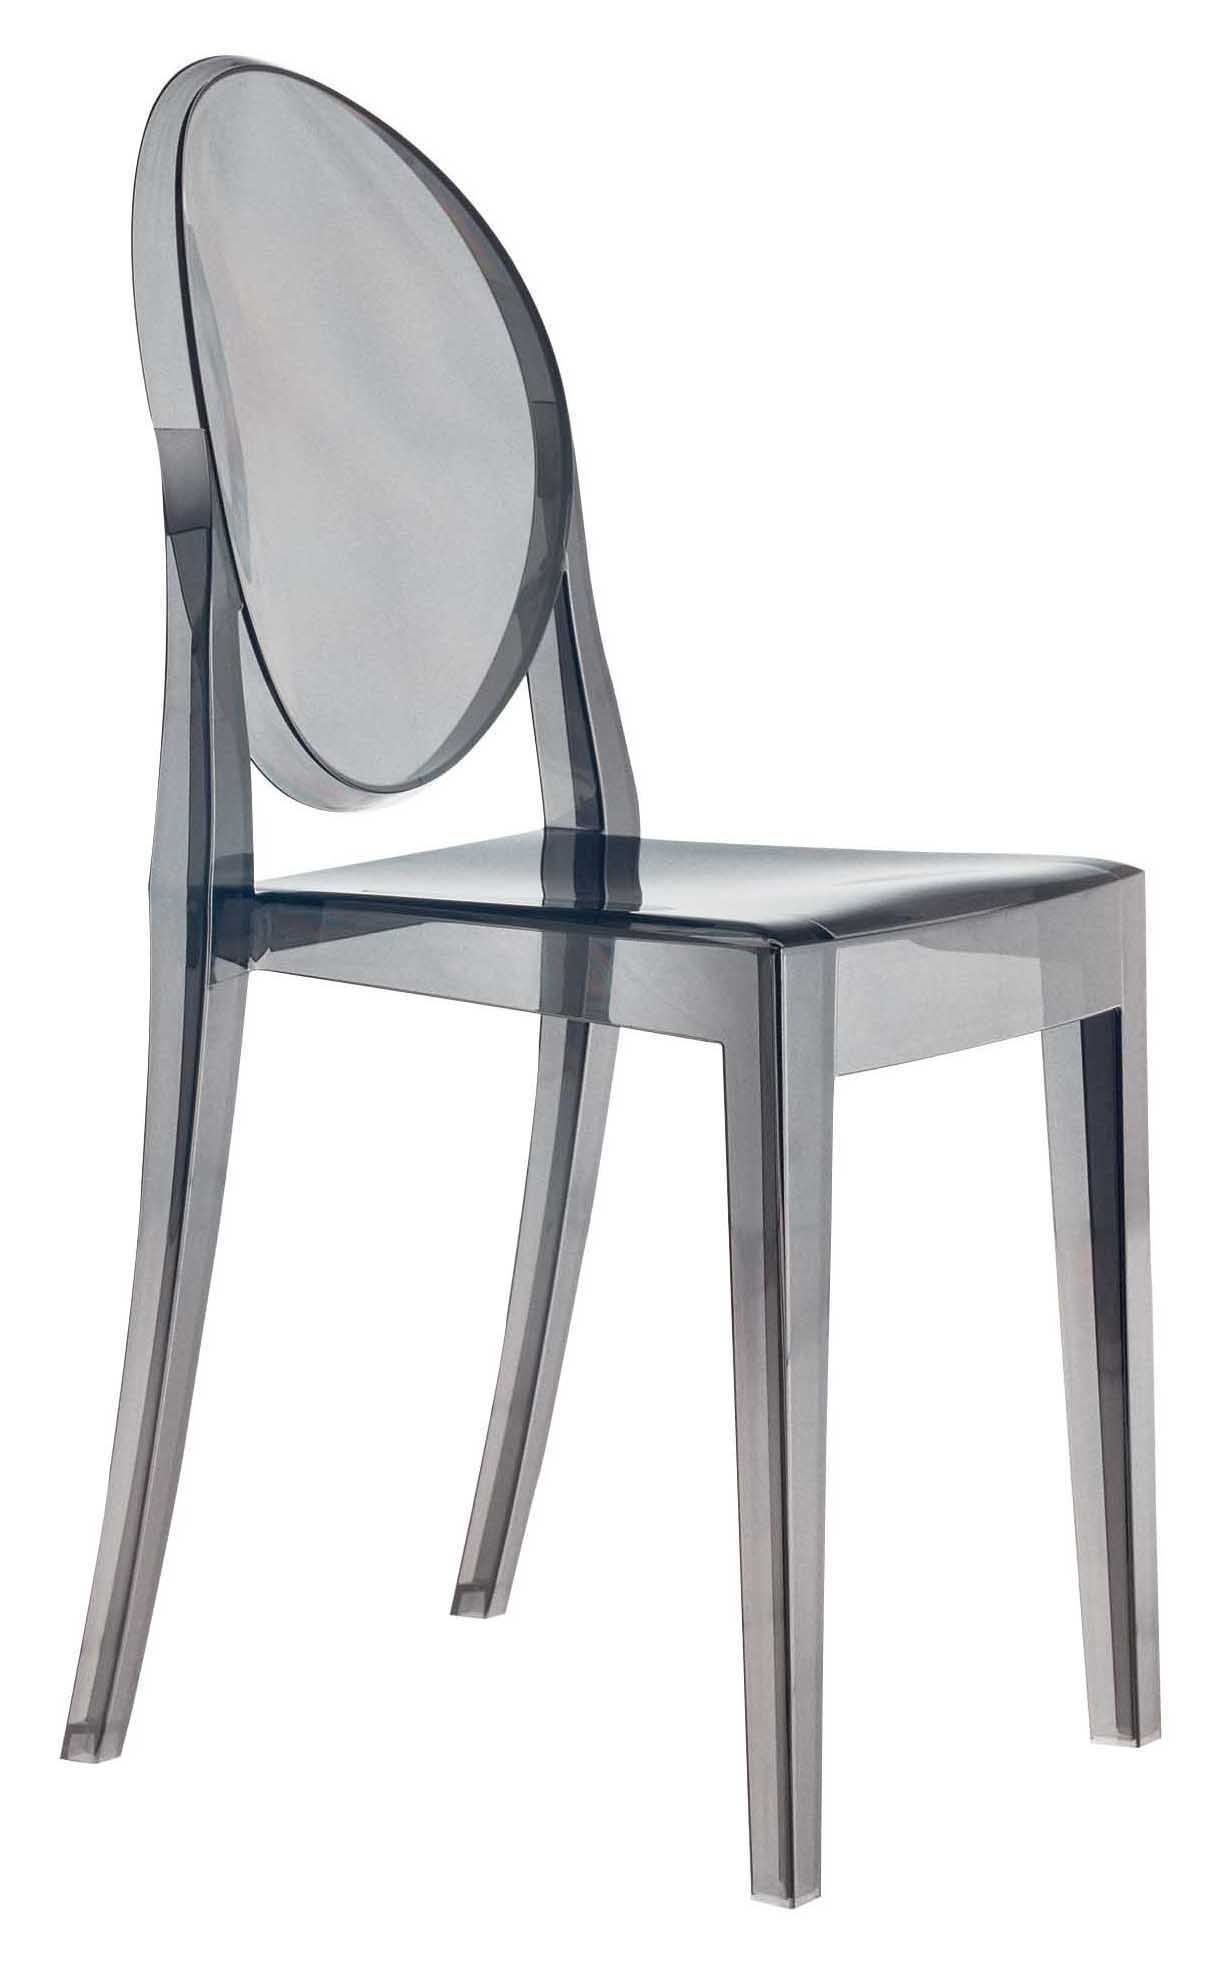 Chaises Polycarbonate Starck Chaise Empilable Victoria Ghost Kartell Fumé L 38 X H